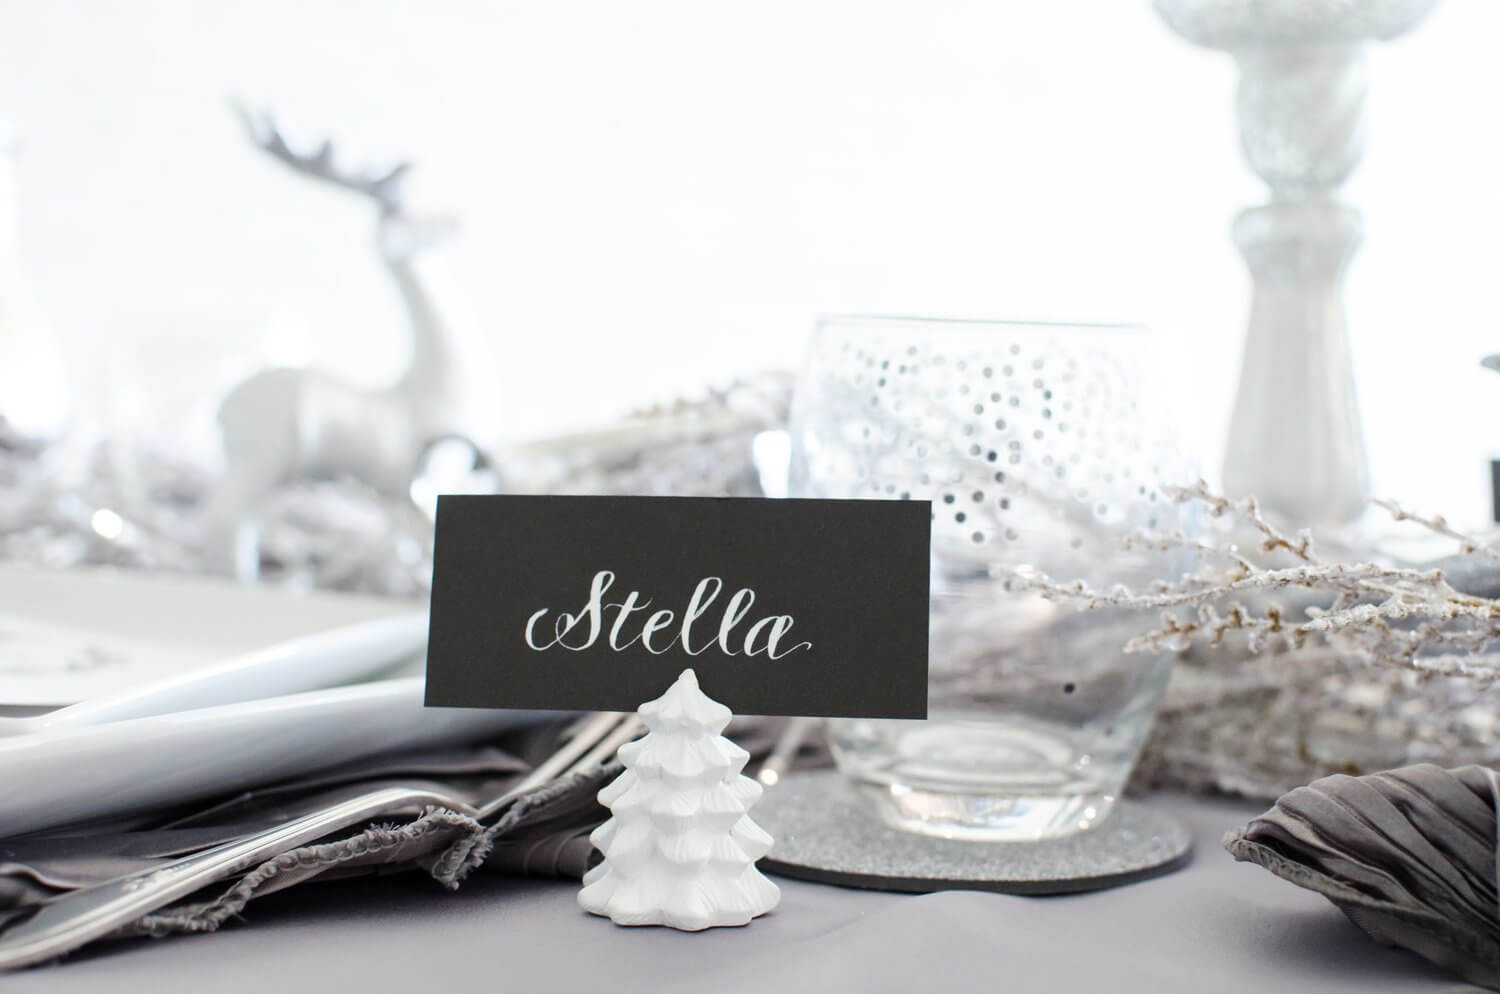 Cute white tree place card holder with hand calligraphed place card. See more ideas from this Winter Wonderland themed Bridal Shower Inspiration created by Mint Event Design www.minteventdesign.com #winterweddingideas #weddingwedding #bridalshowerideas #winterwonderland #placecard #calligraphy